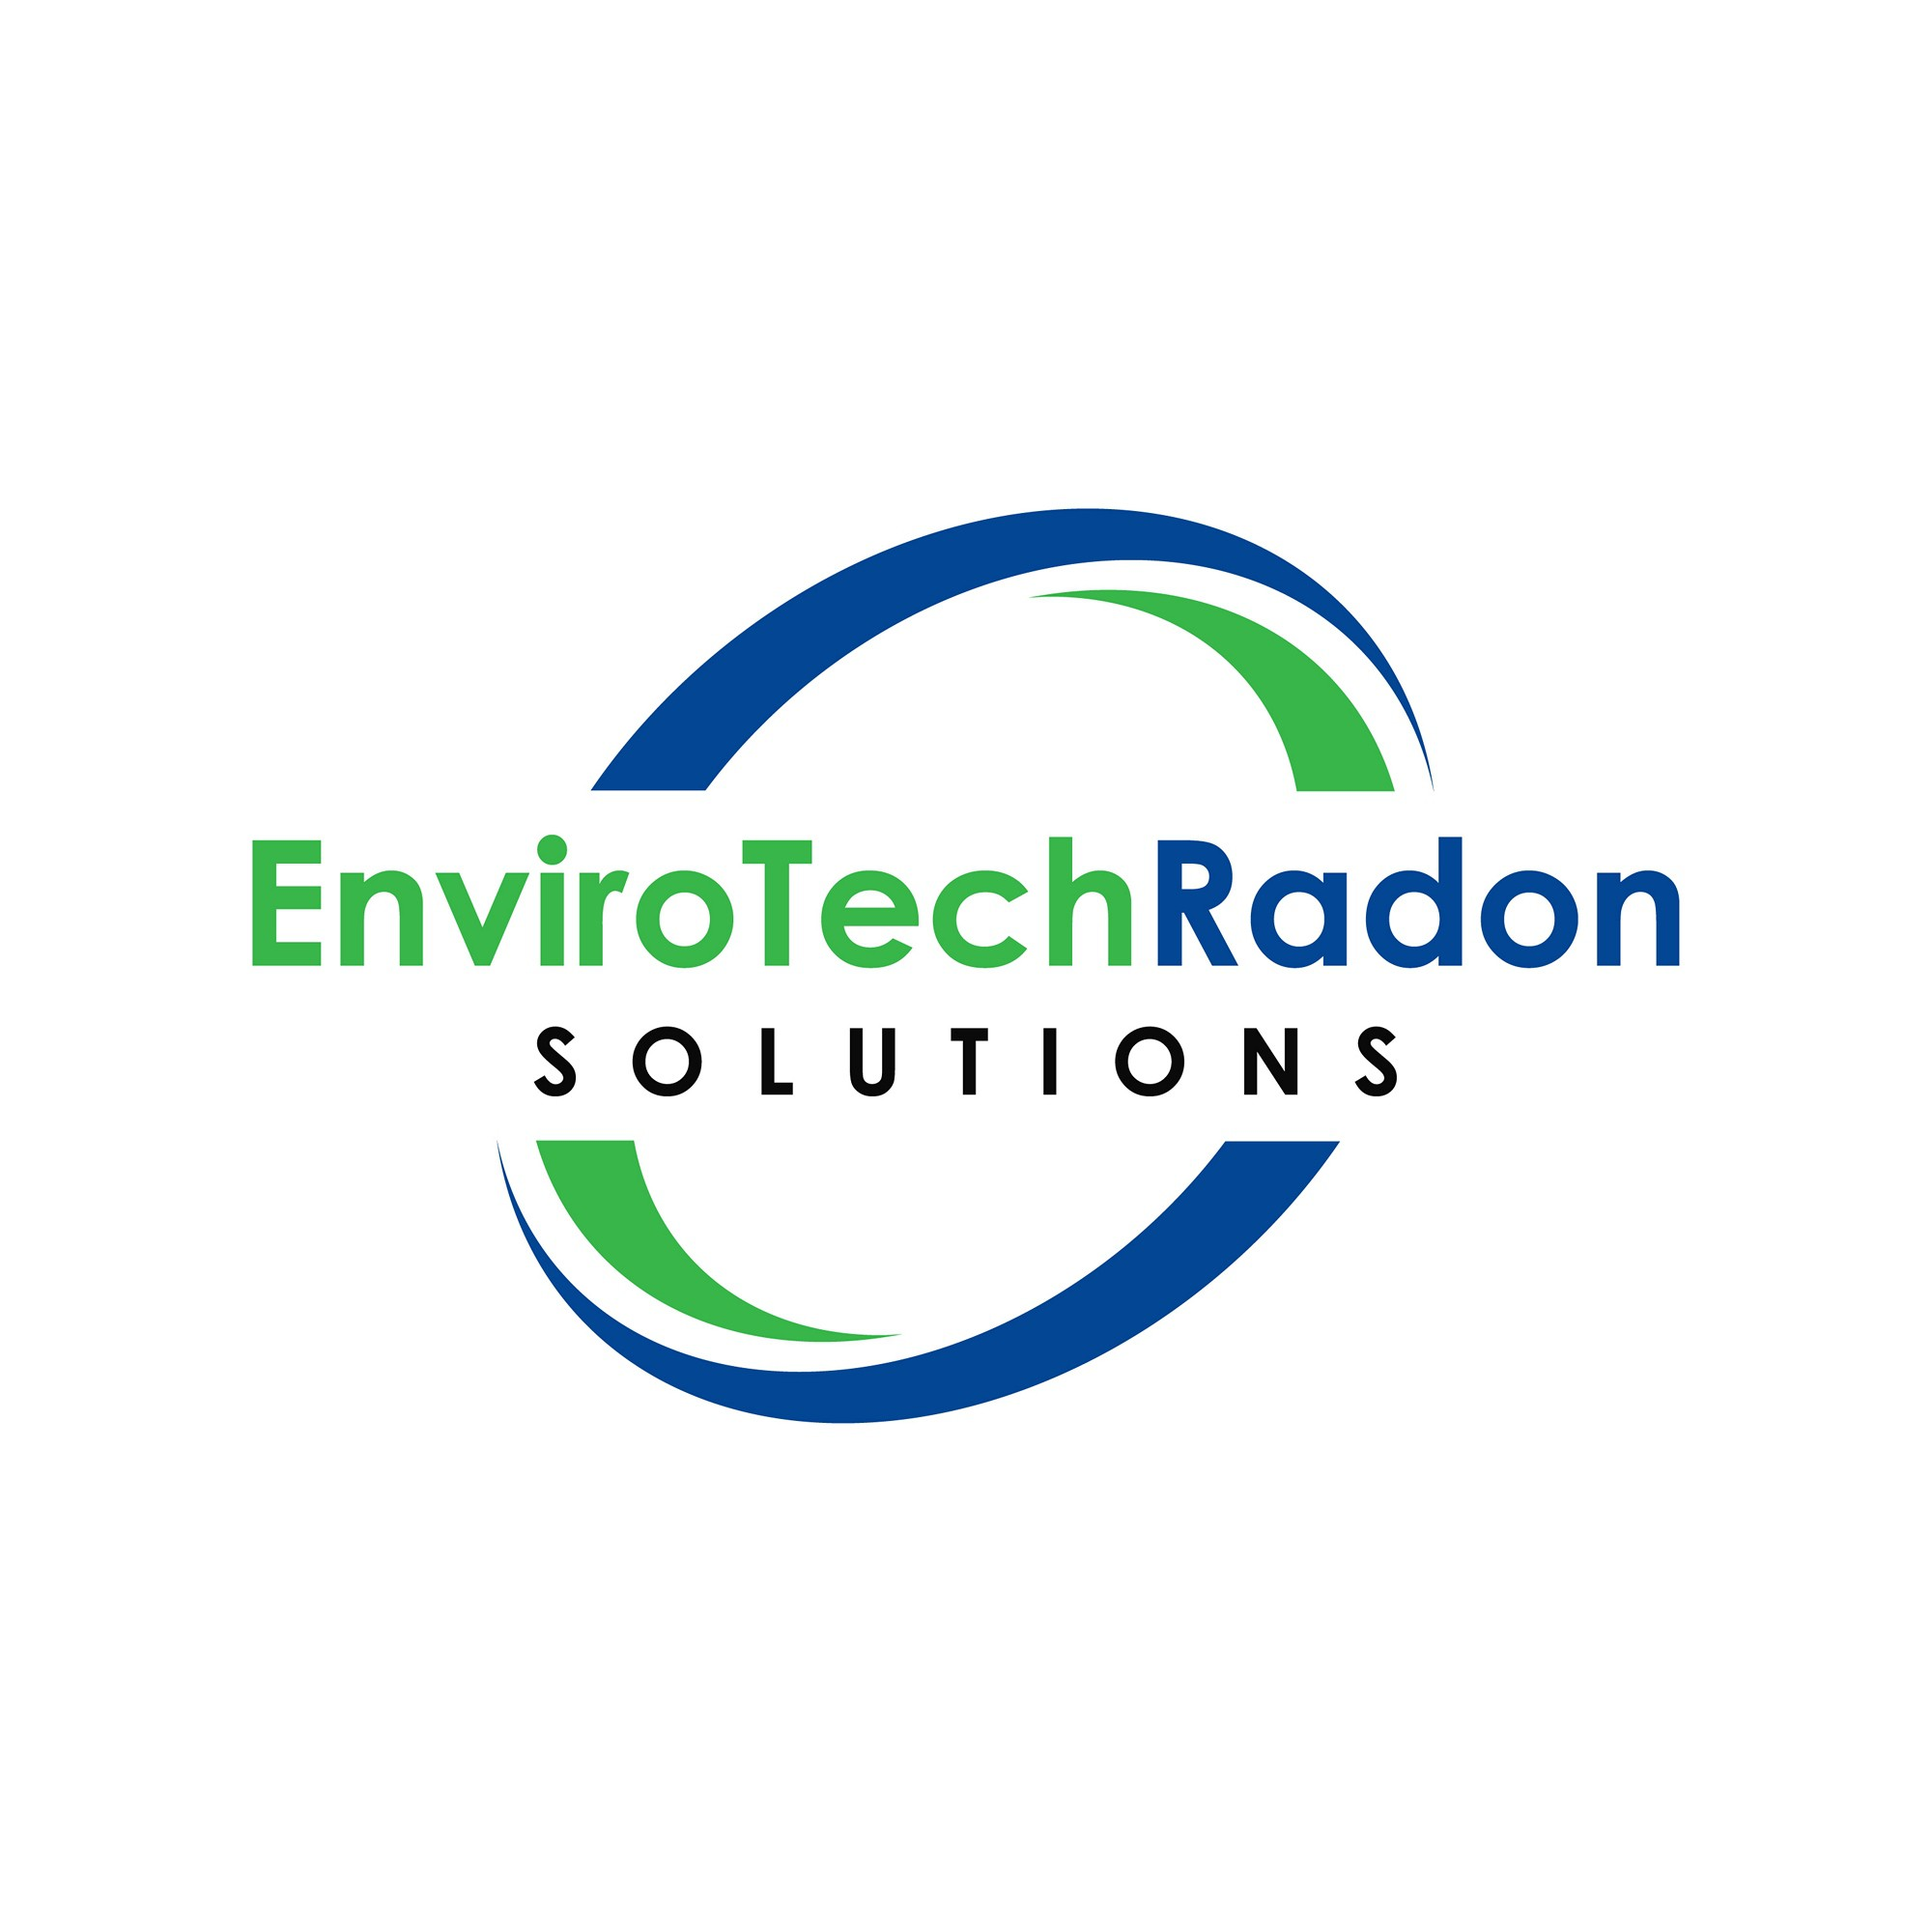 Logo and hosted website for a Radon company